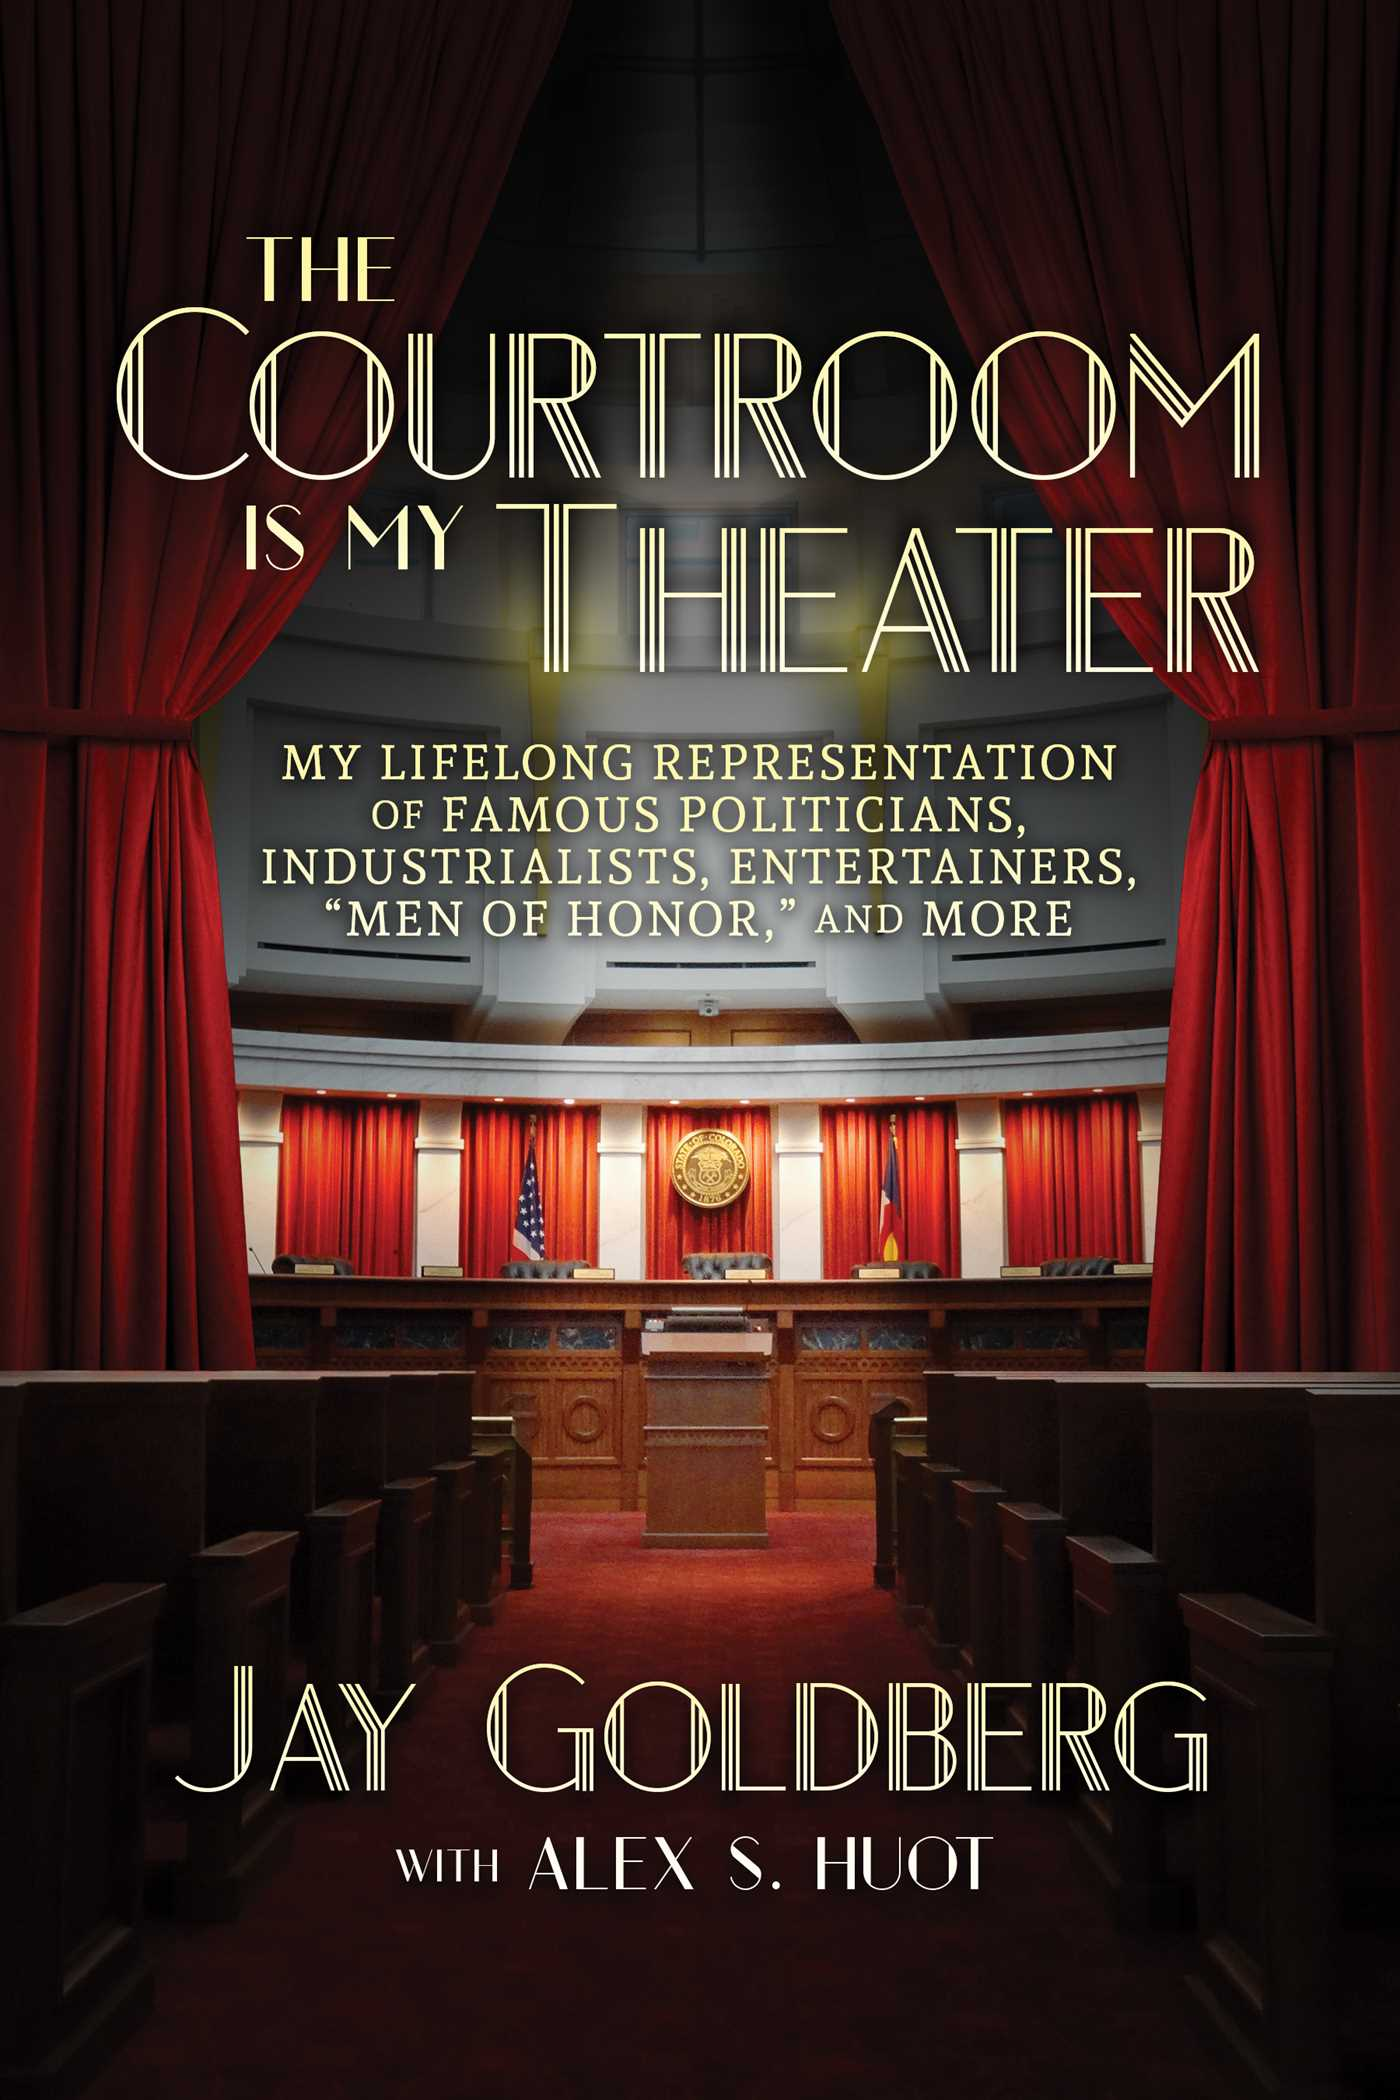 The courtroom is my theater 9781642930719 hr